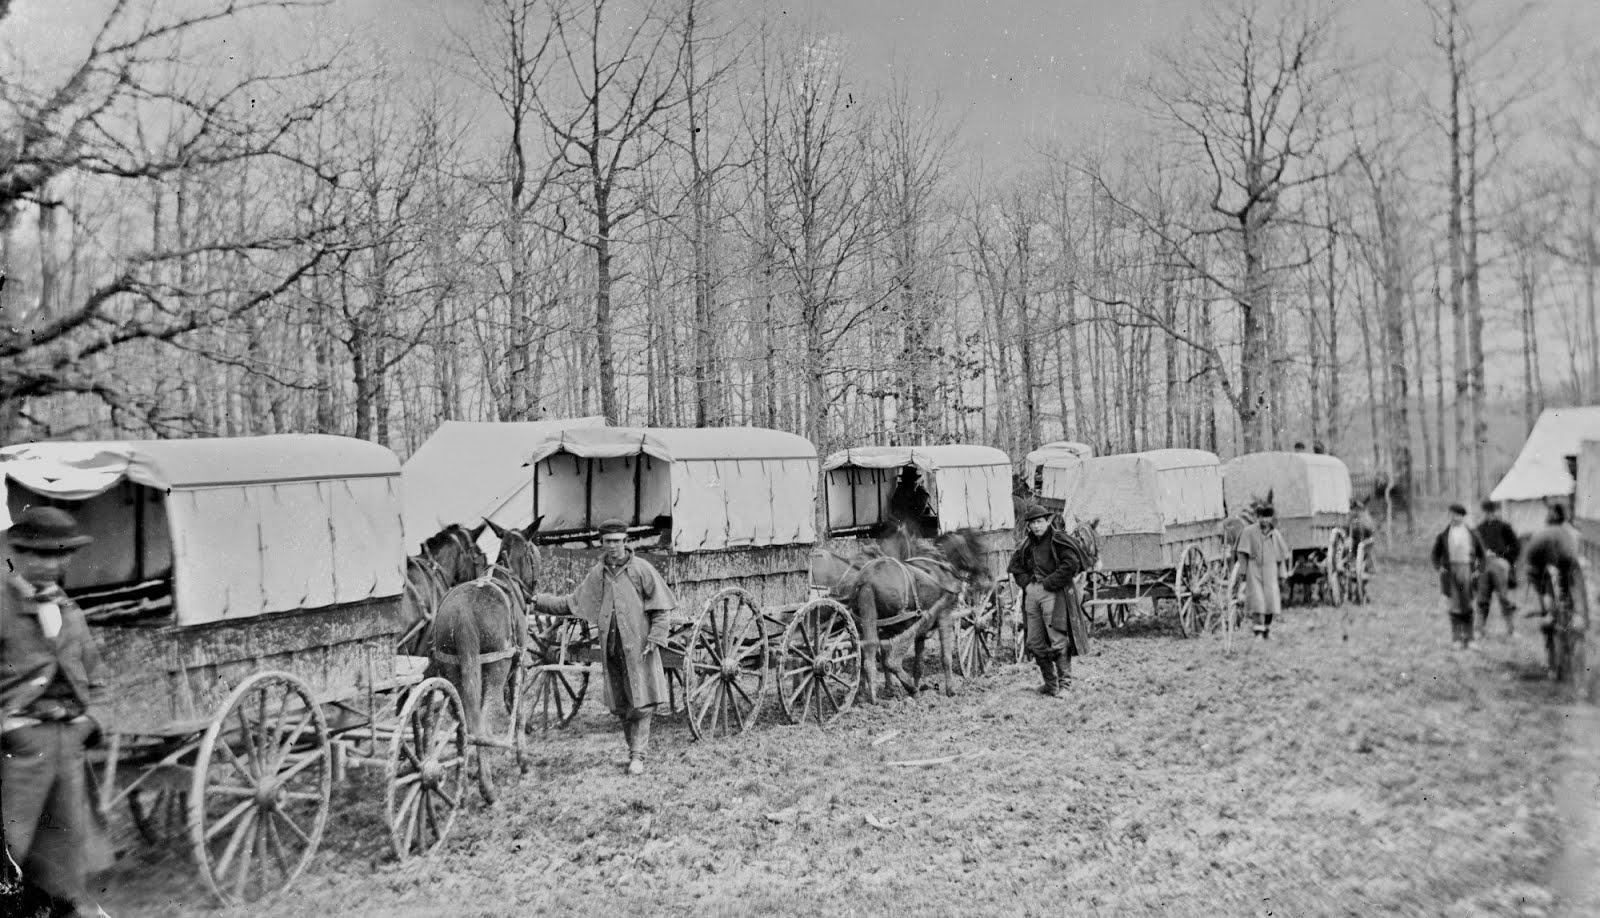 medicinal development during the american civil Writing about the american civil war has at times devolved into romanti- cized  tales this may  medicine in the civil war era differed profoundly from today's  standards of care in the 19th  edge and treatment methods developed at this  time.